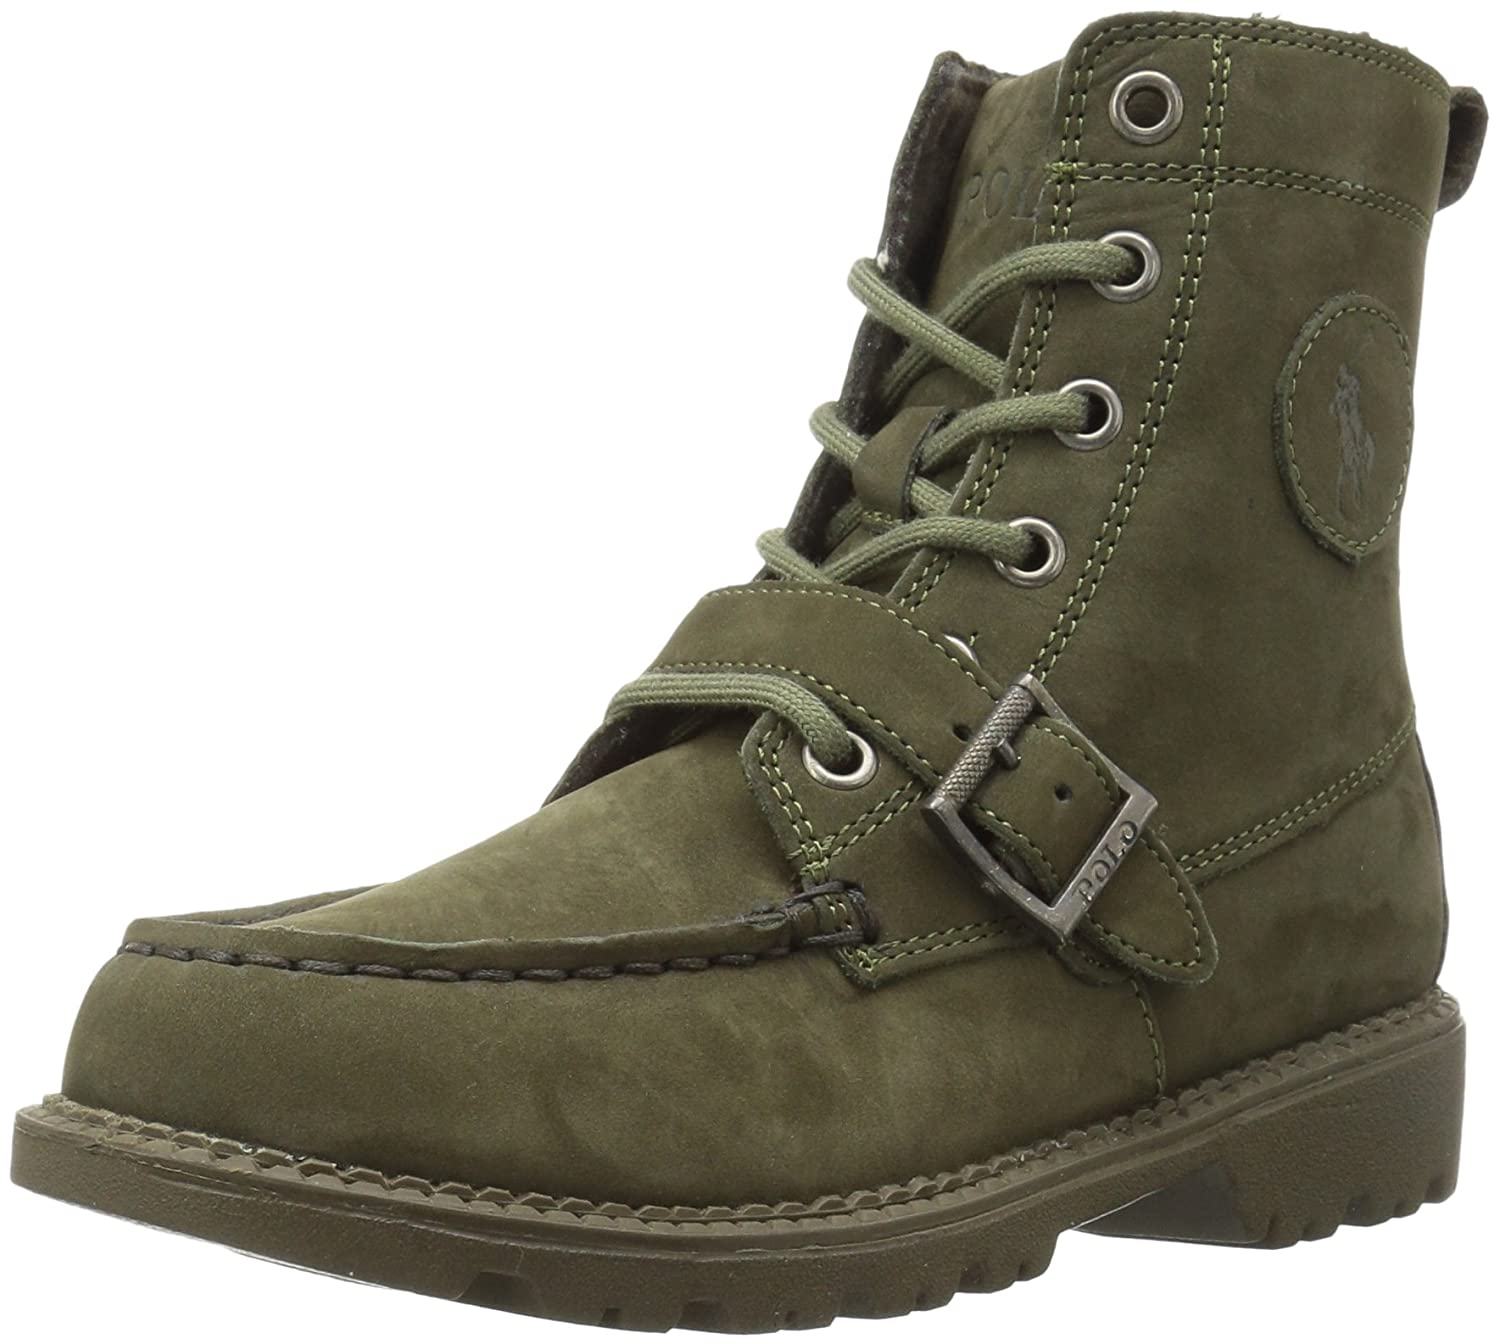 Polo Ralph Lauren Kids Boys Ranger HI II Fashion Boot Triple Olive Nubuck 2.5 Medium US Little Kid